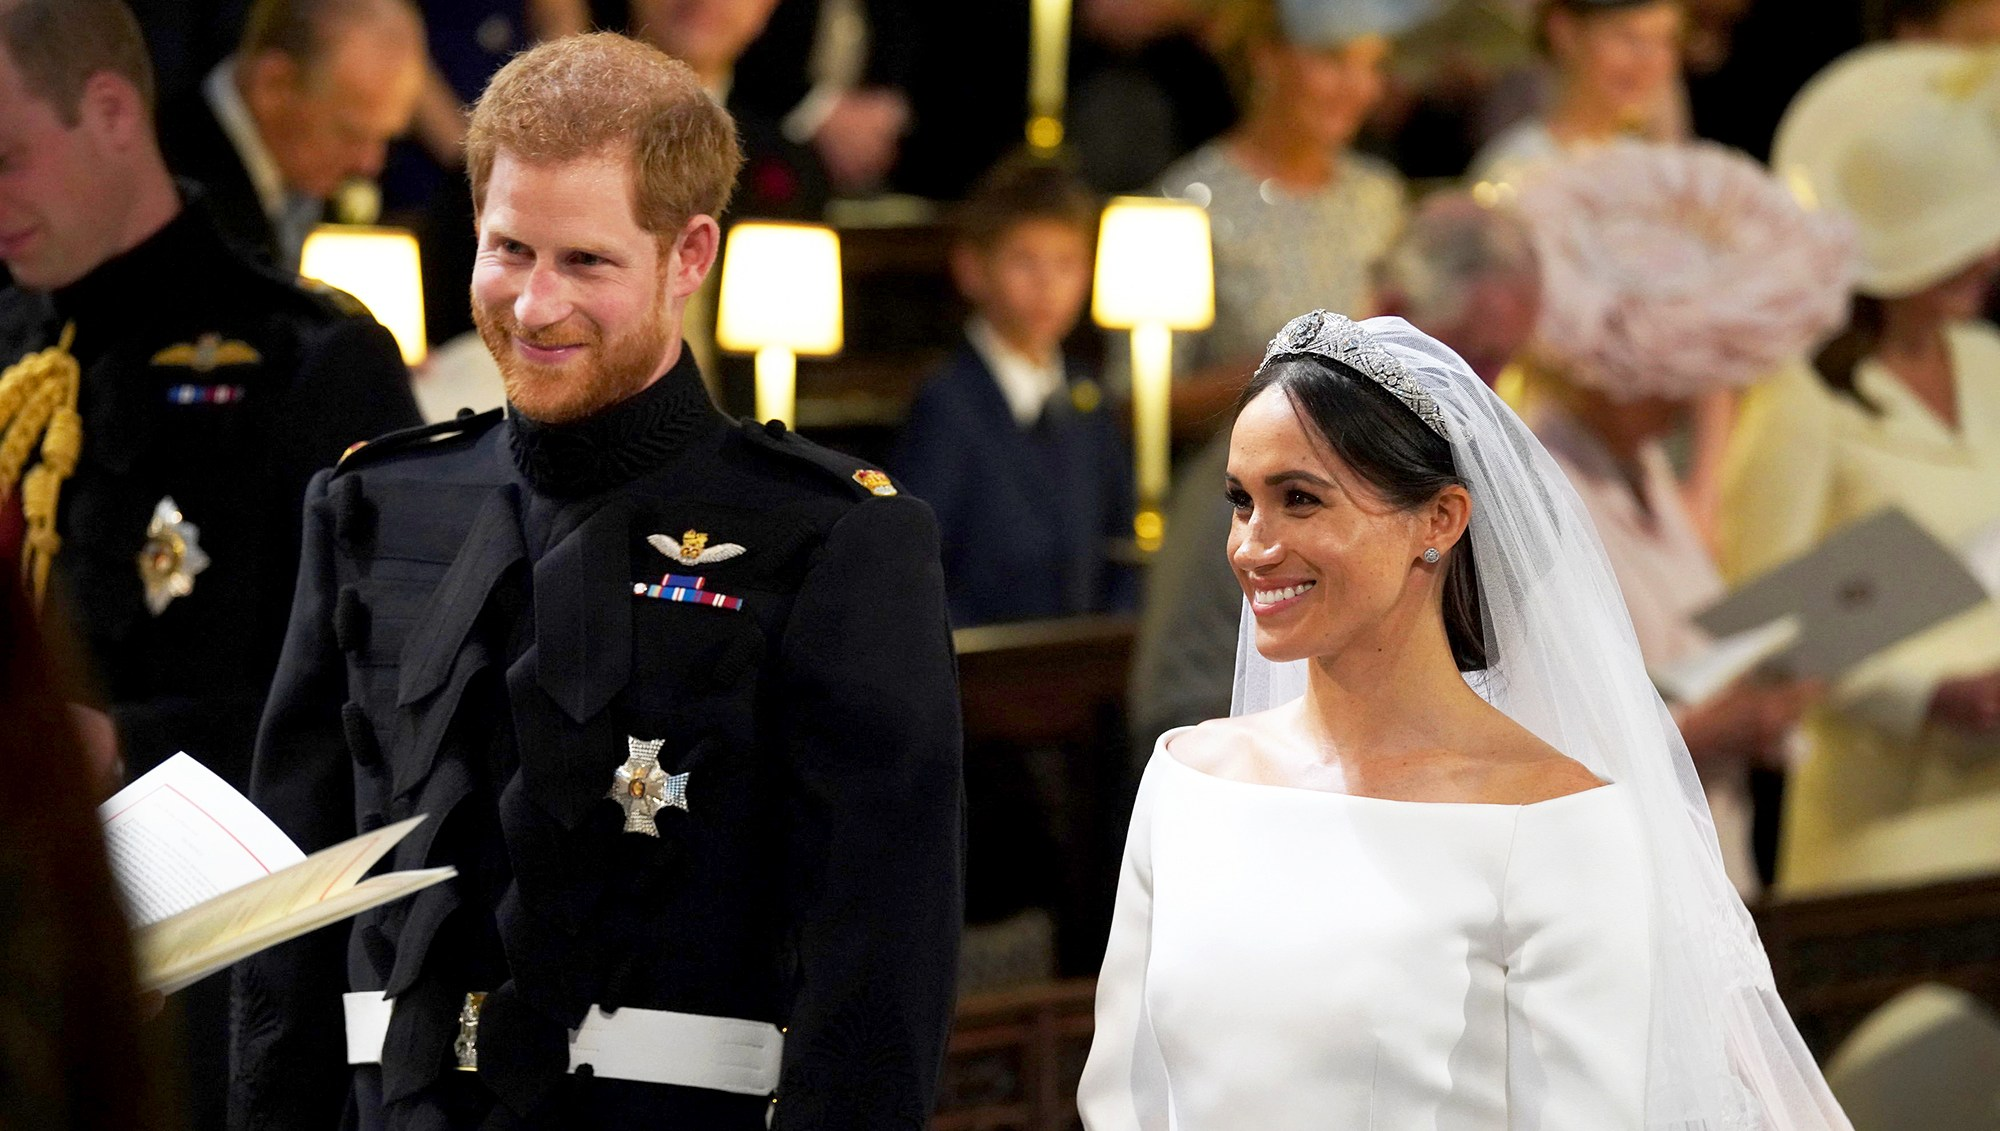 Prince Harry and Meghan Markle at St George's Chapel, Windsor Castle on May 19, 2018 in Windsor, England.